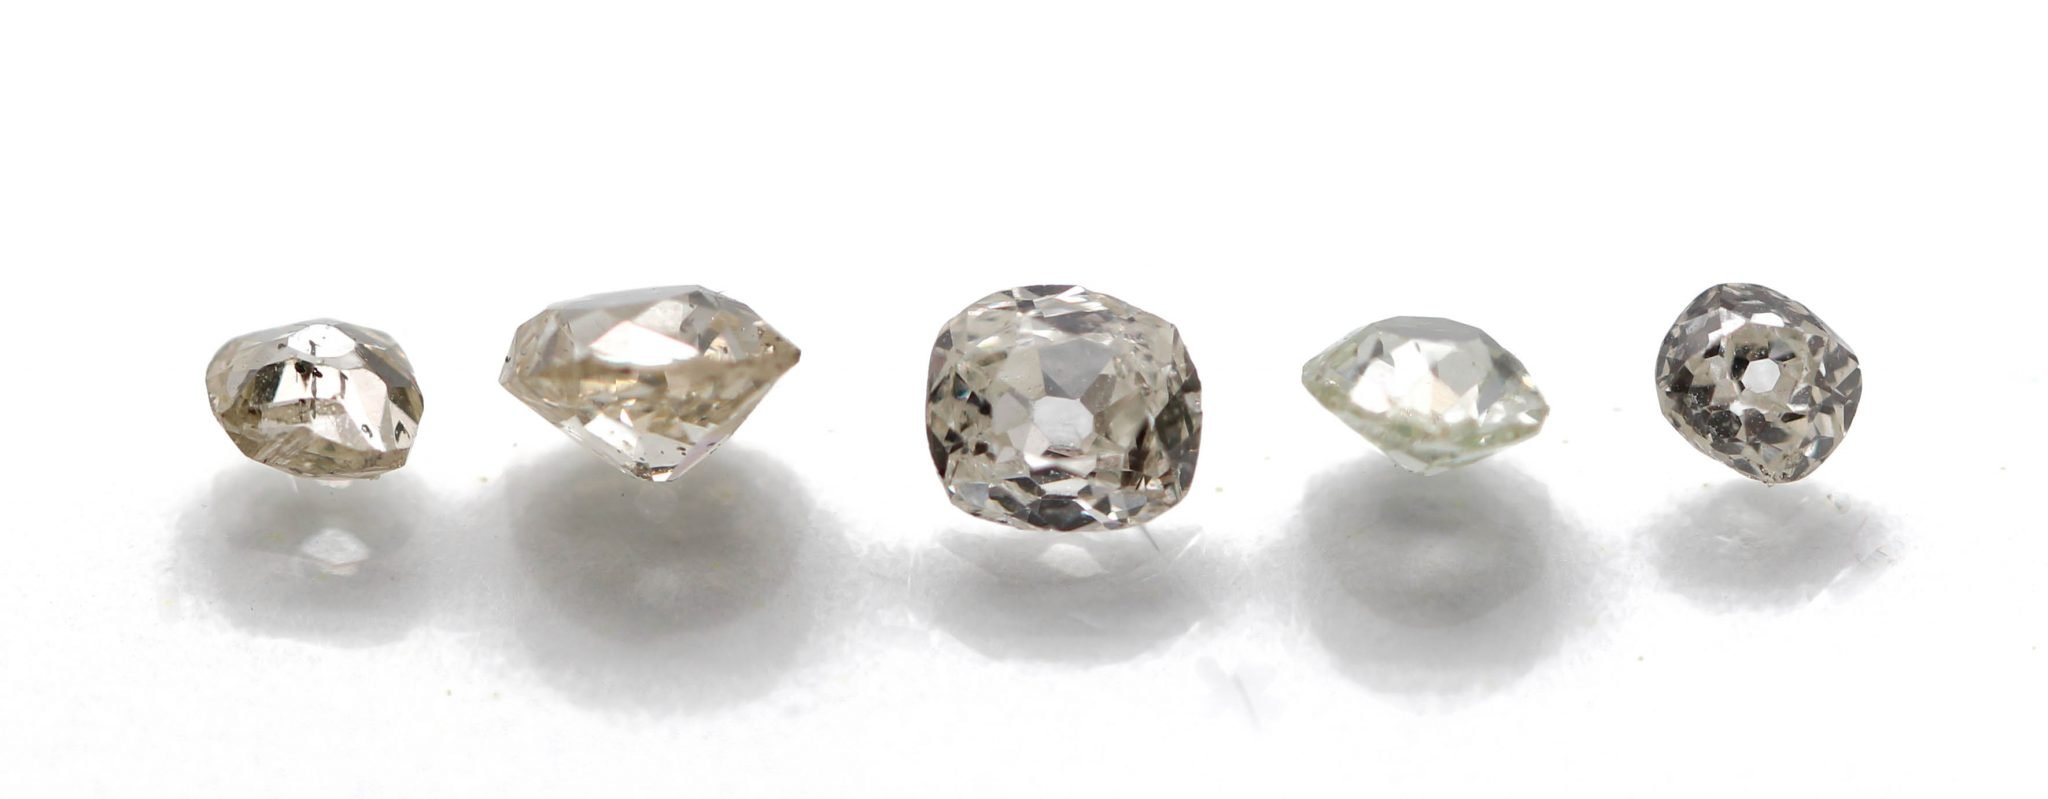 the process of mining and cutting of diamonds Cutting diamonds - cutting diamonds requires a special process because of the hardness of the stones learn about the process of cutting diamonds and the cleaving procedure.